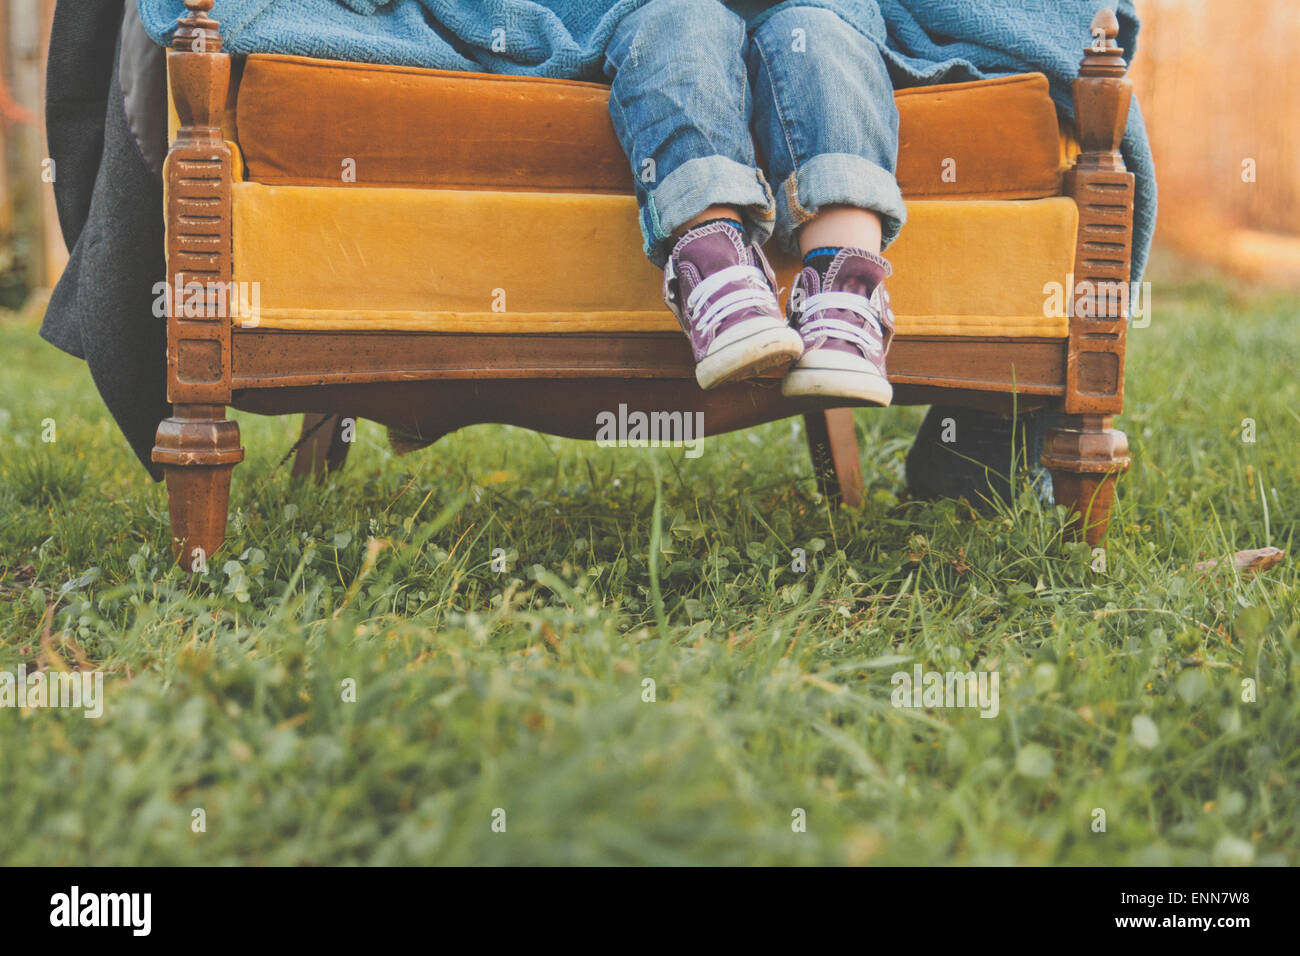 A young boys feet dangle off the end of an old chair in a grassy field. - Stock Image